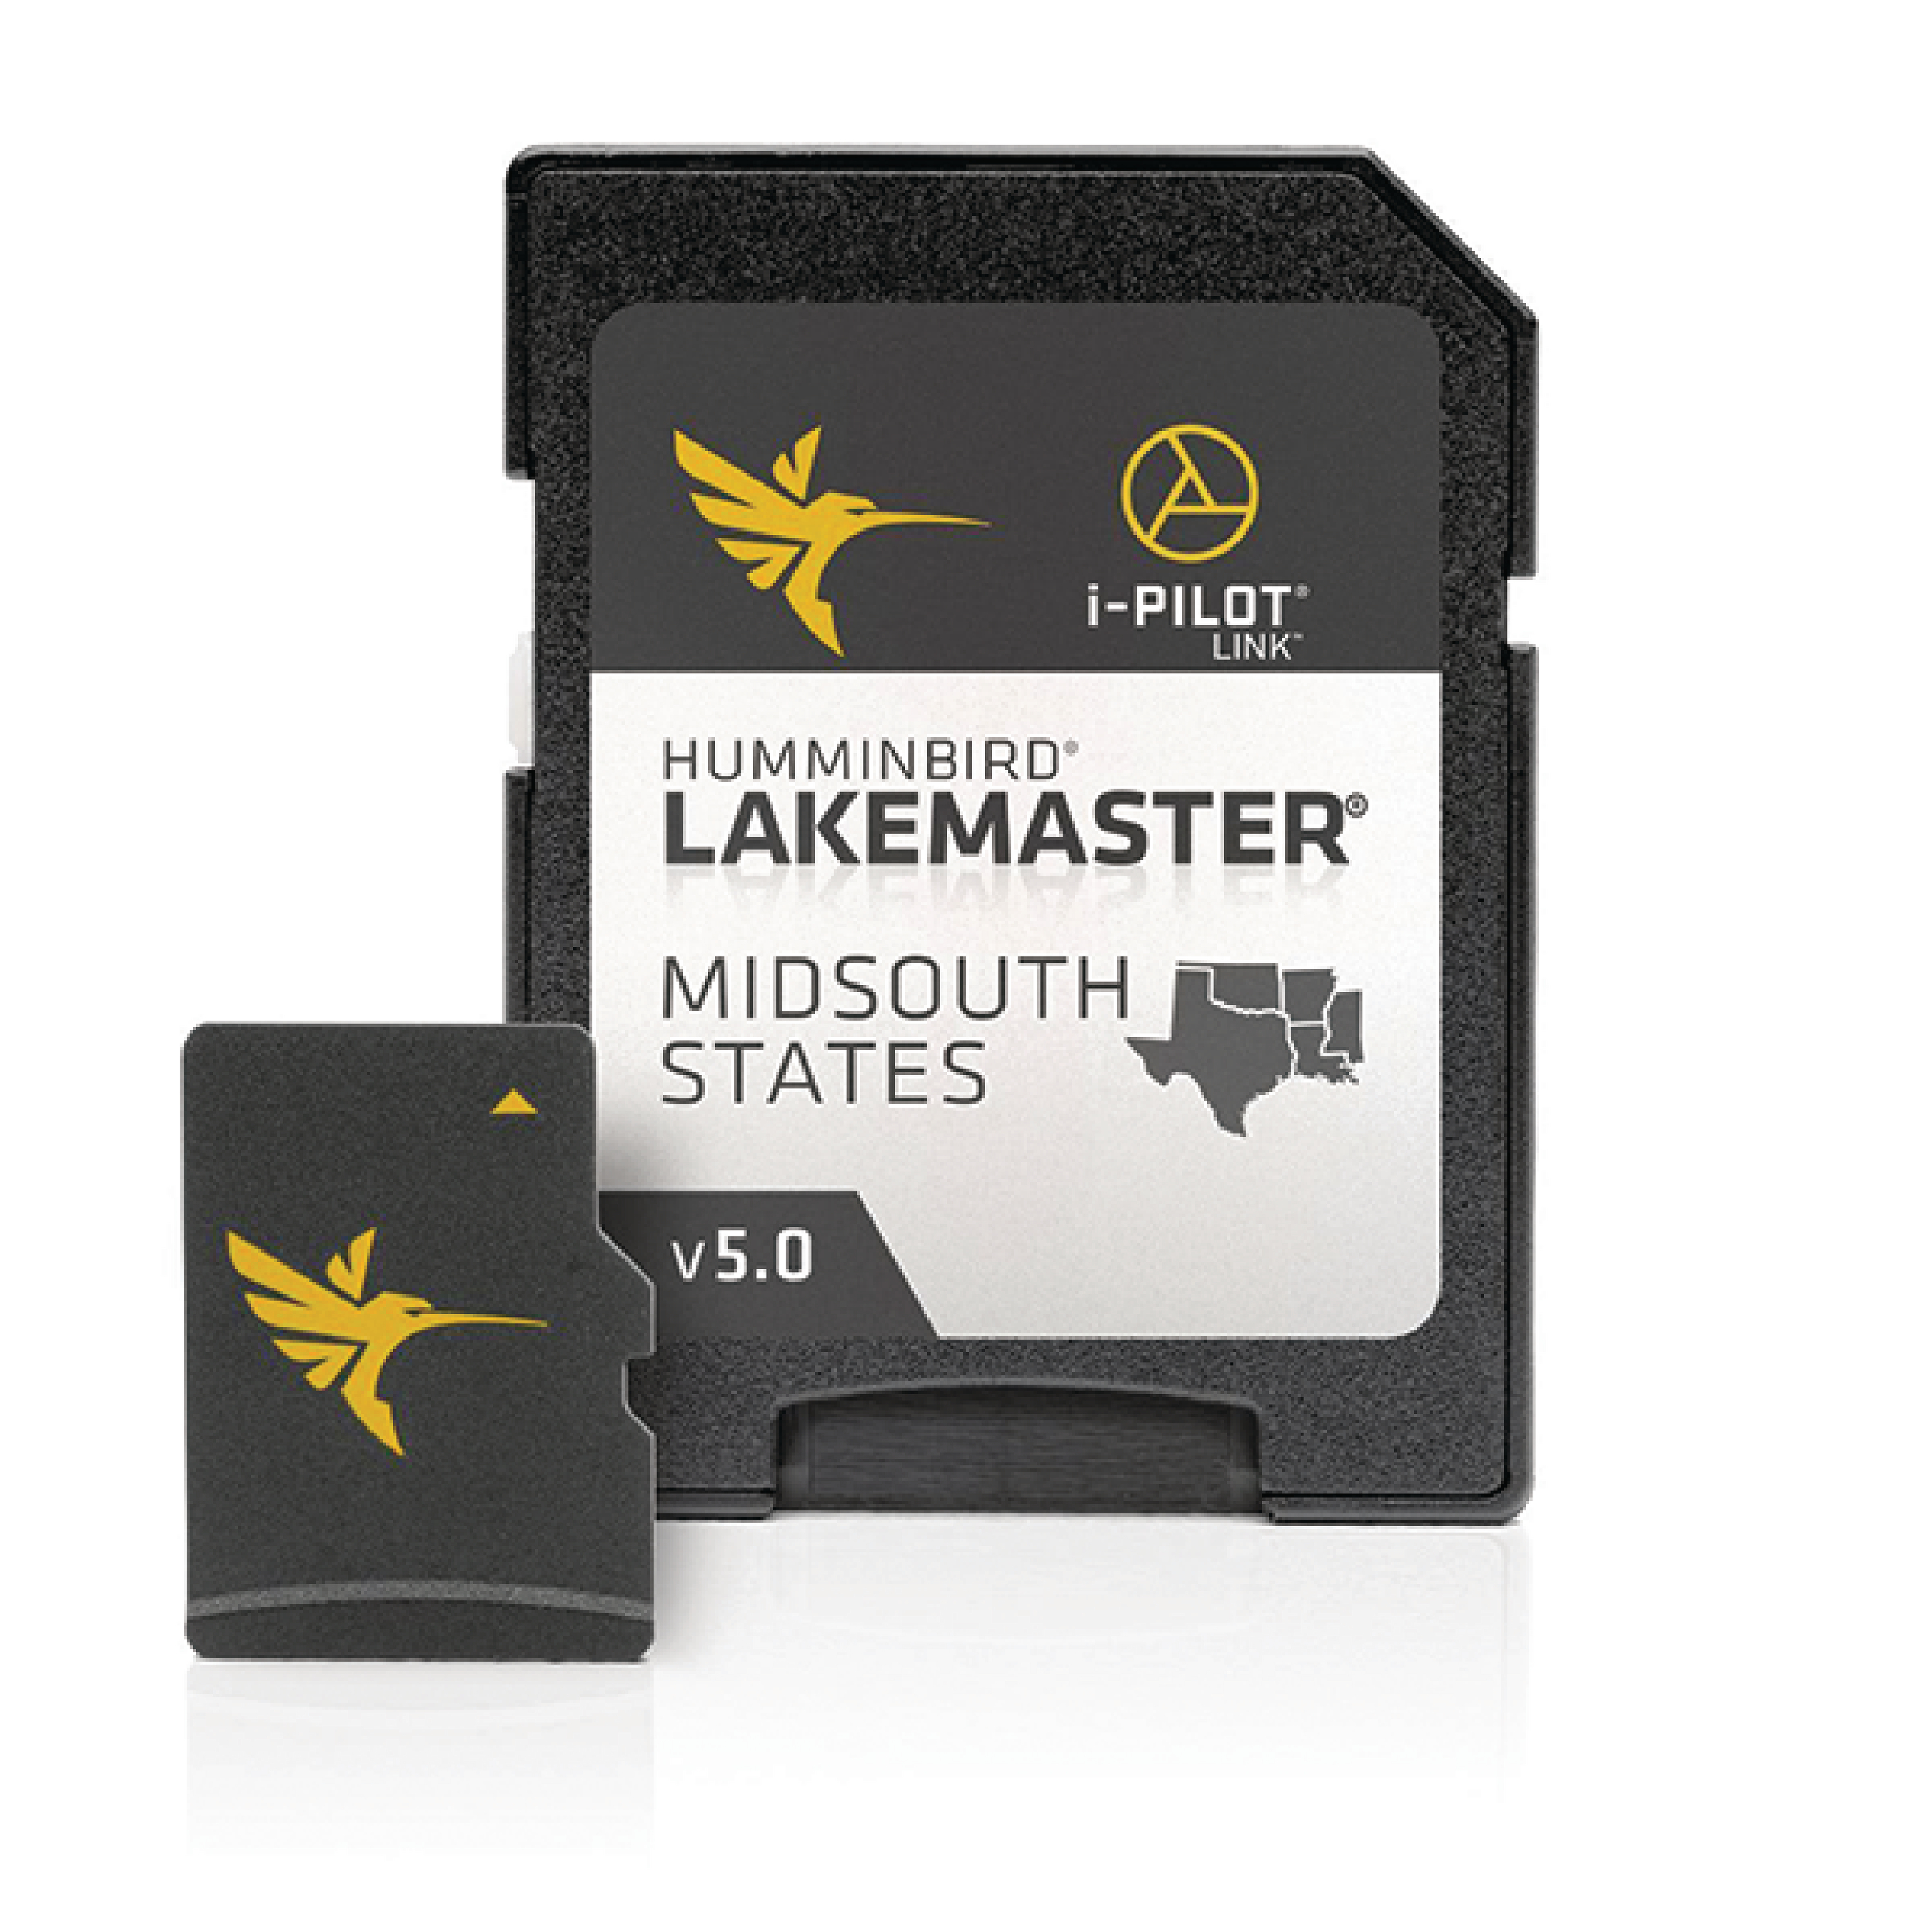 Humminbird 600009-9 Lakemaster Version 5 Chart Card - Mid-South Edition